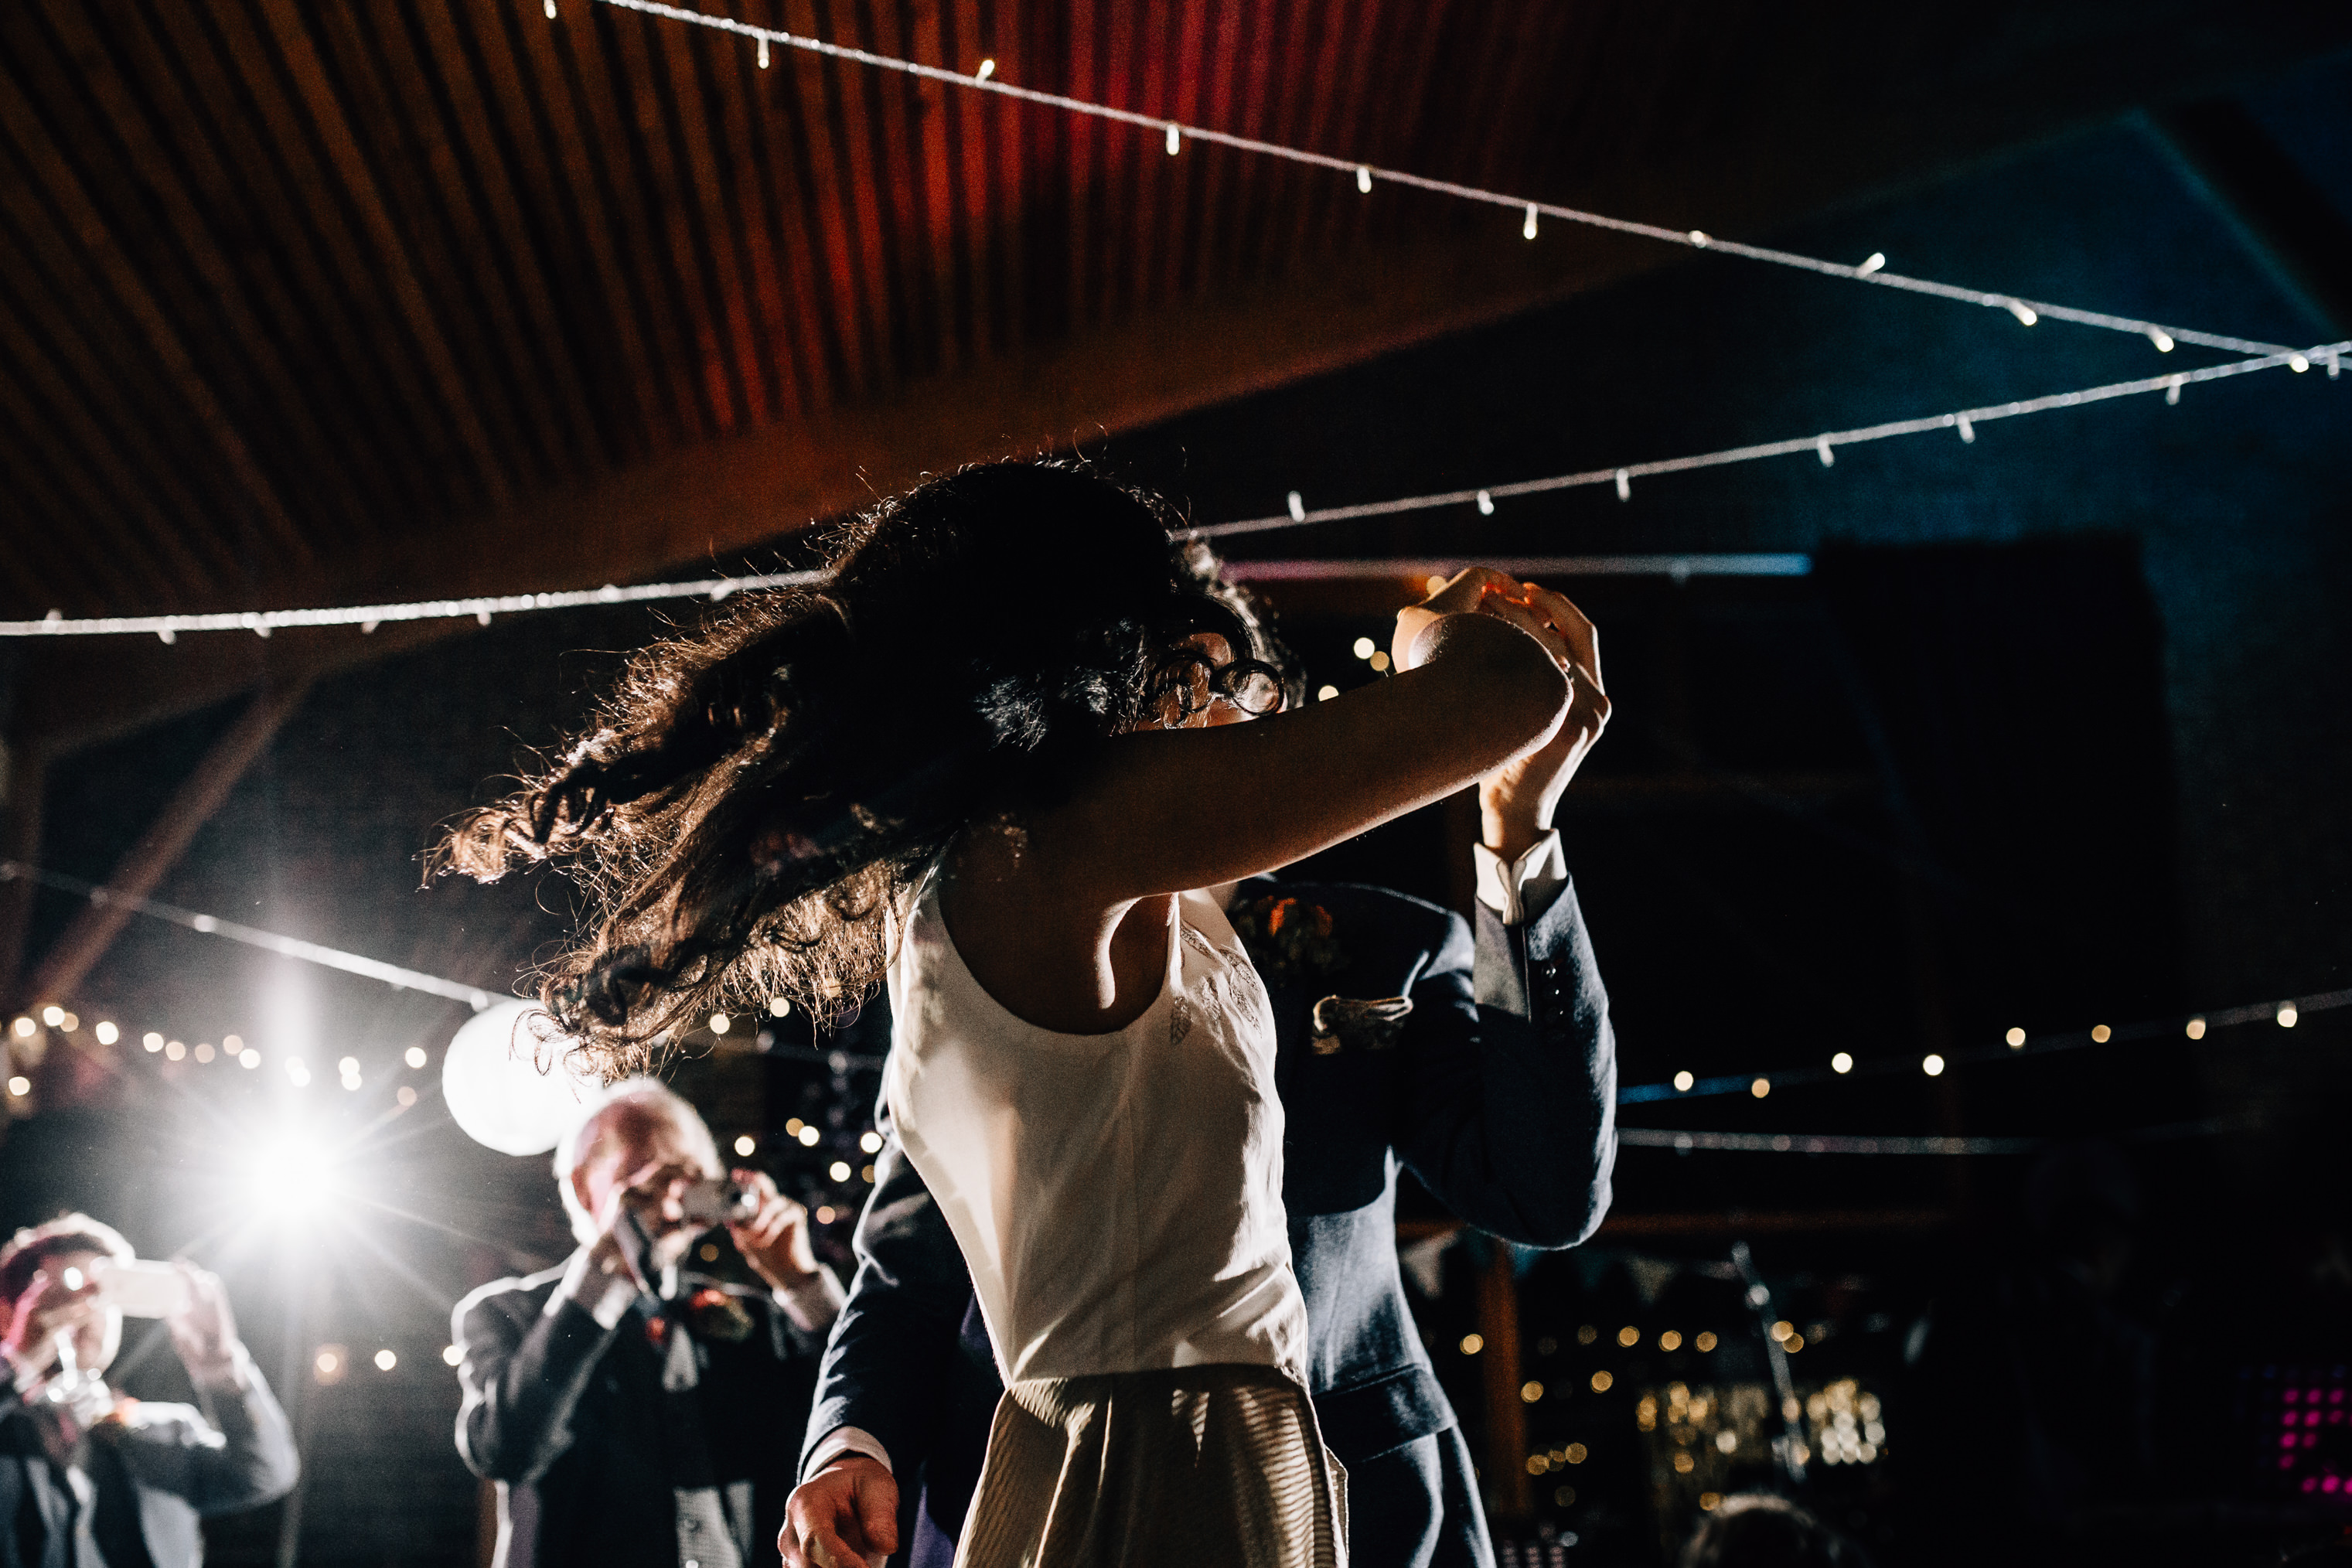 quirky fun autumn wedding in london wedding photographer documentary style first dance